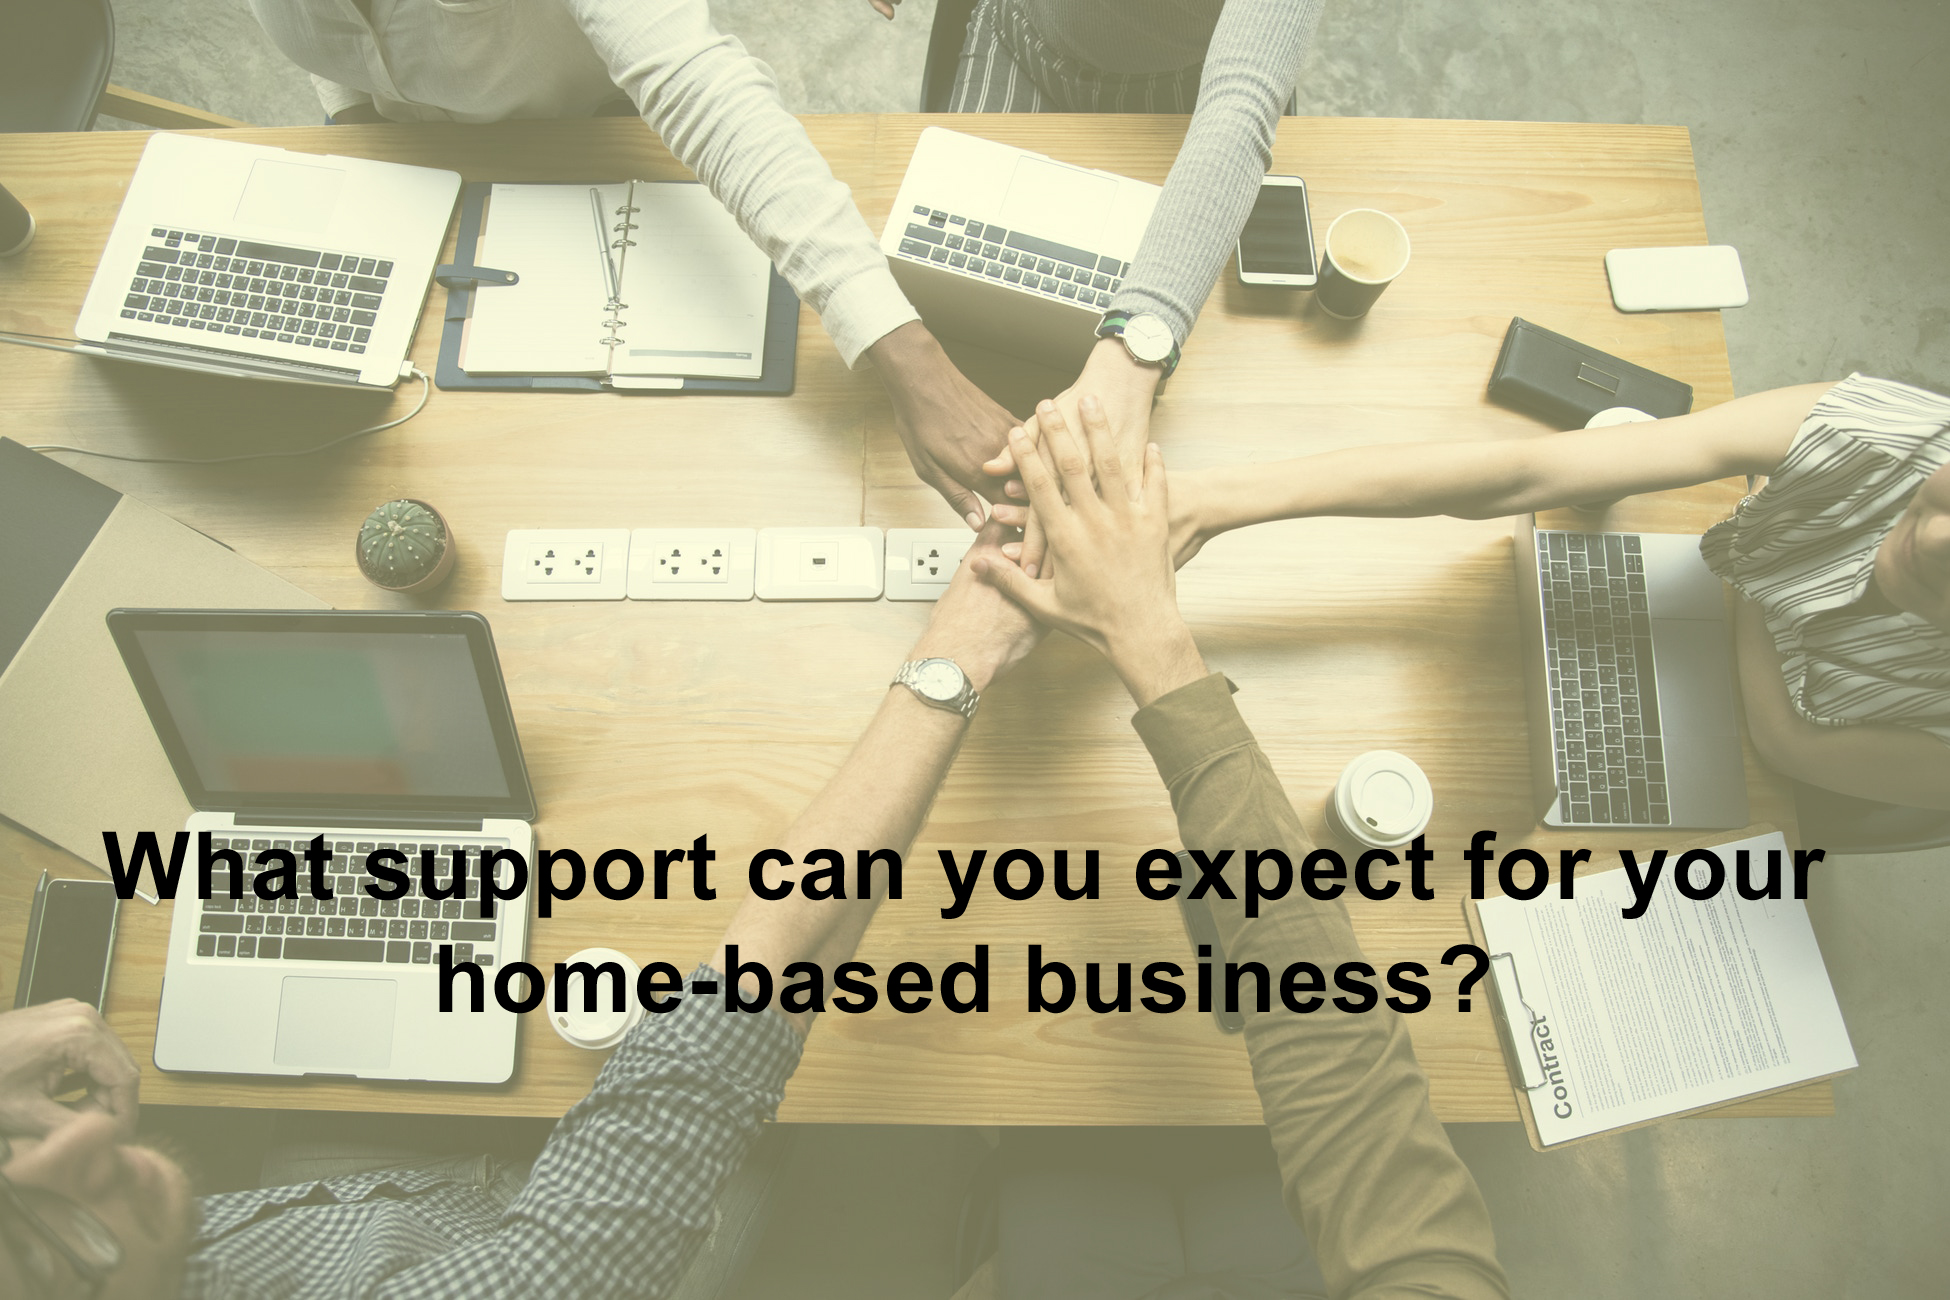 What support can you expect for your home-based business?